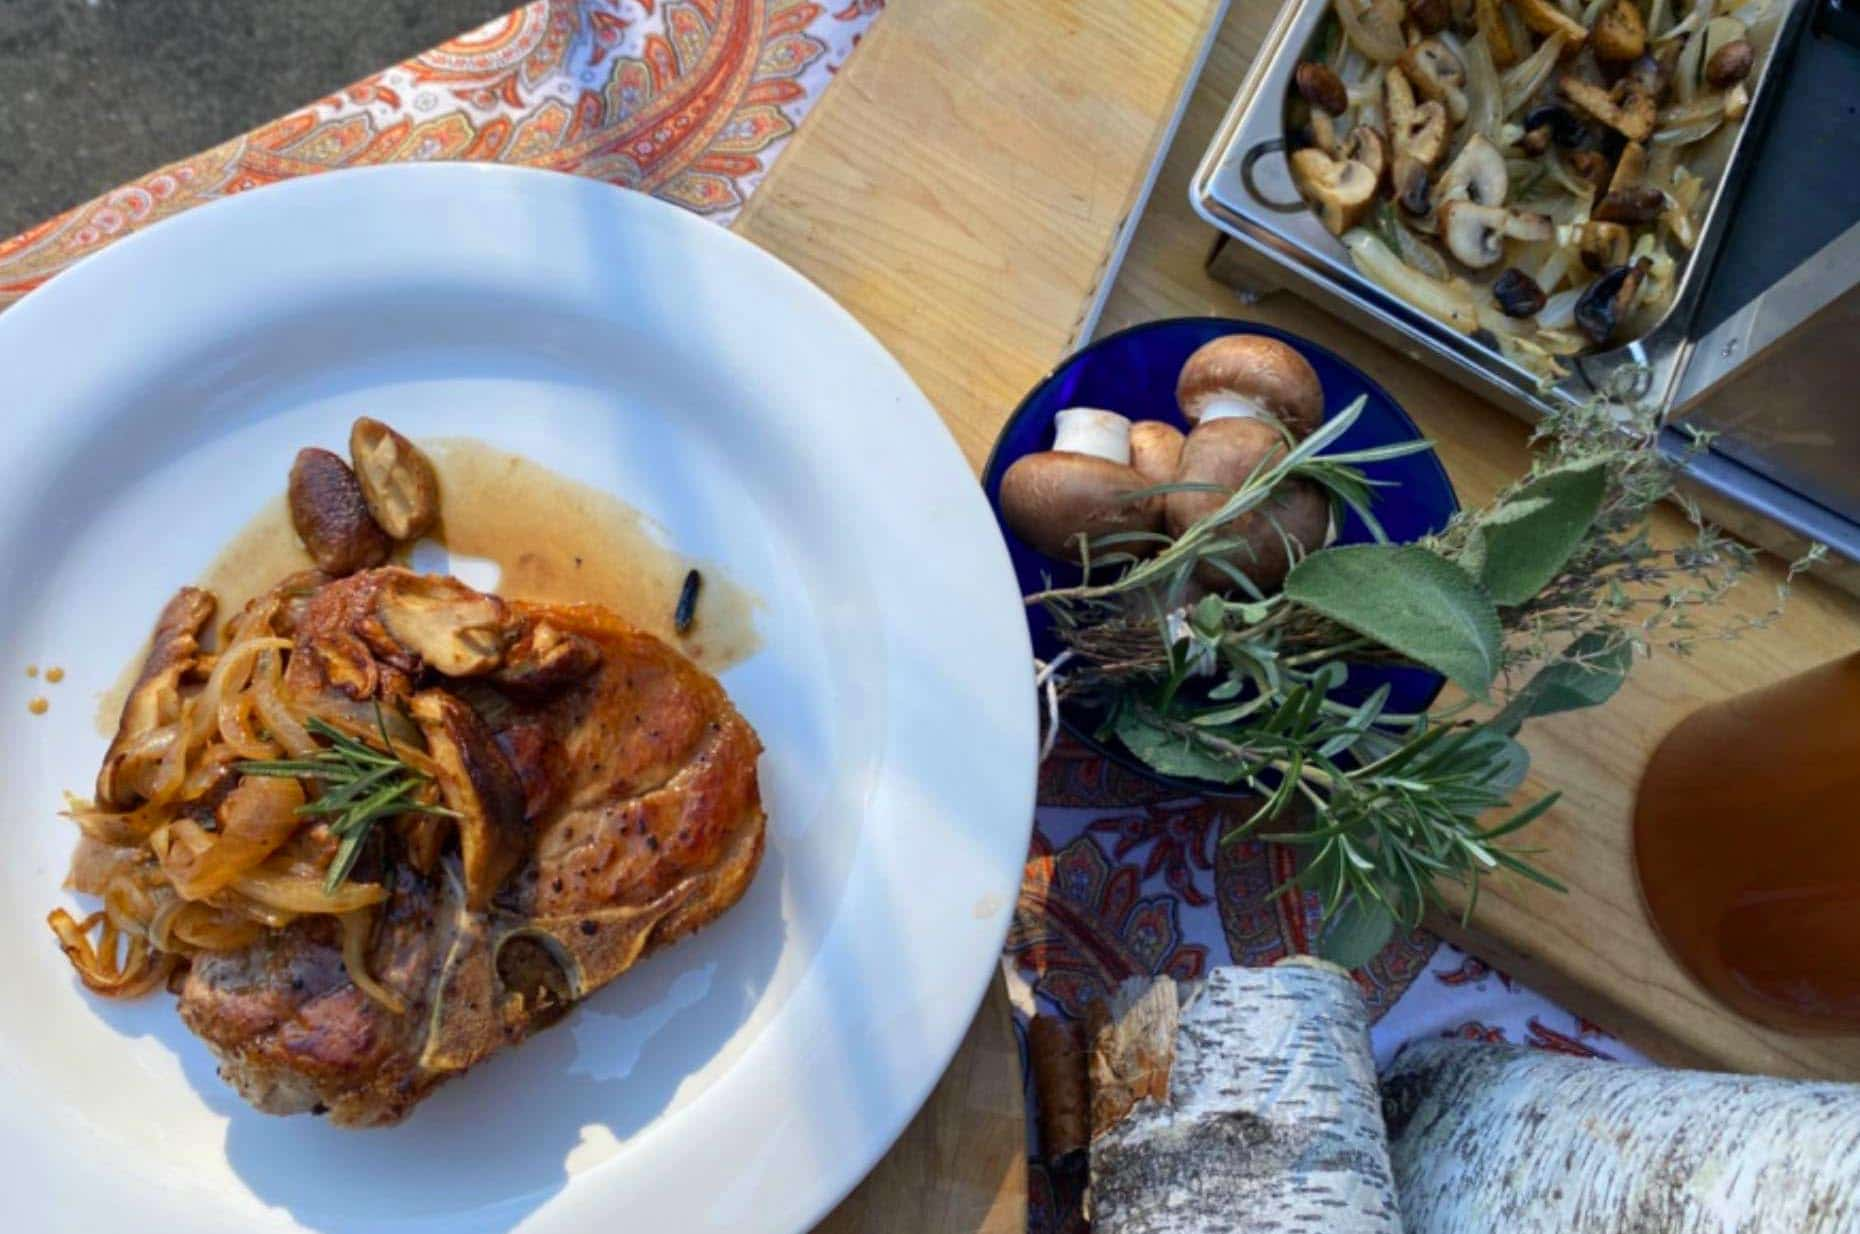 Cider Brined Bone in Pork Chop with Savory Herbed Mushrooms and Spanish Onions